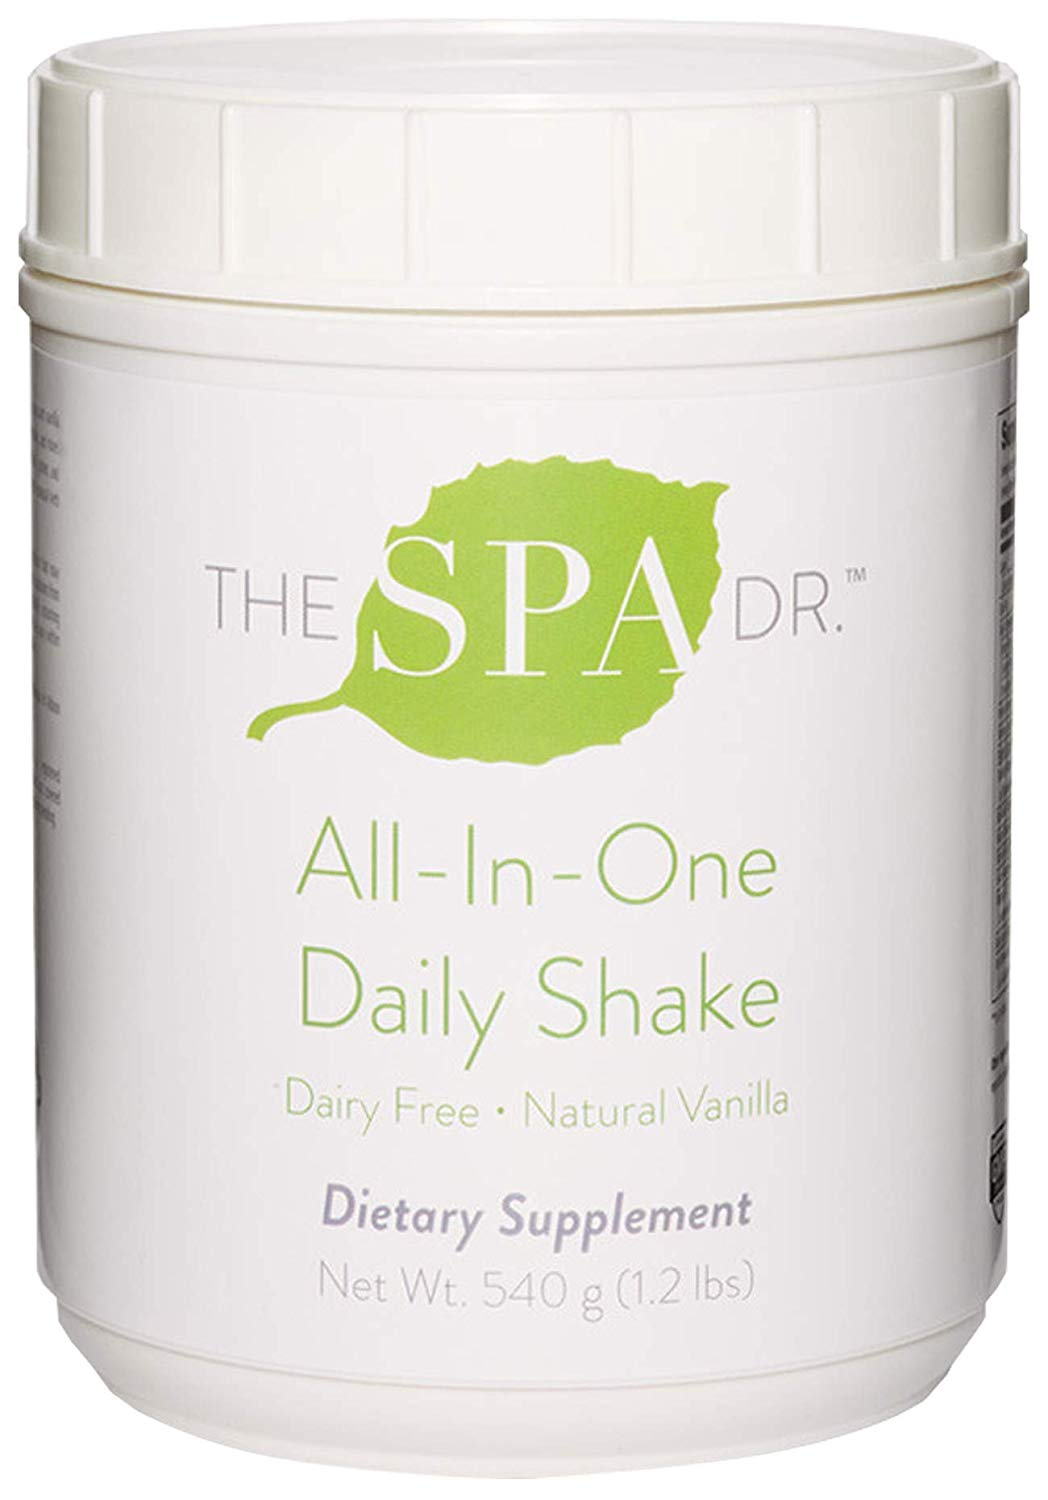 the spa dr. all-in-one daily shake